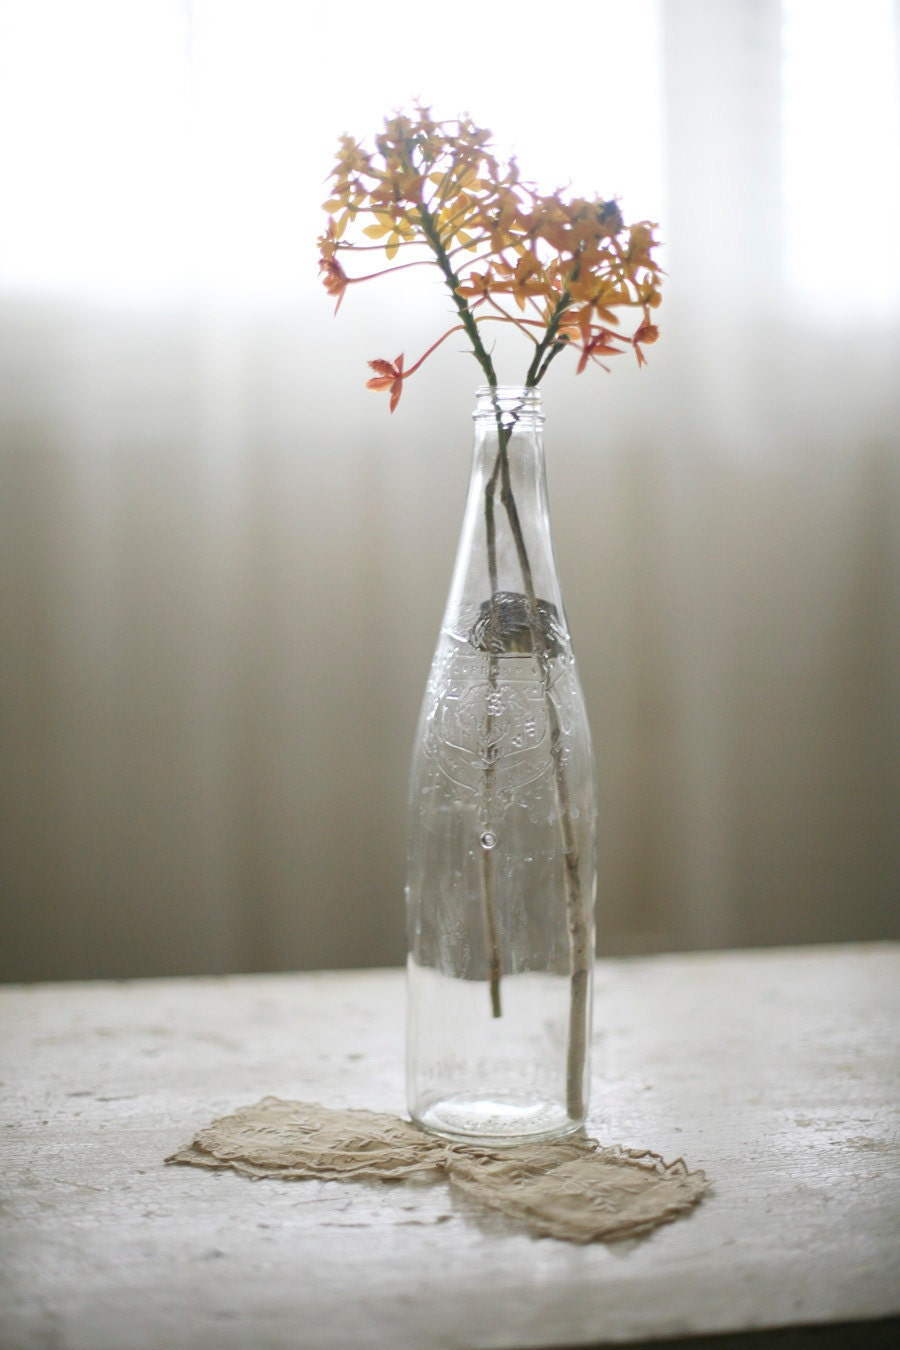 two old glass wine bottles - sadieolive